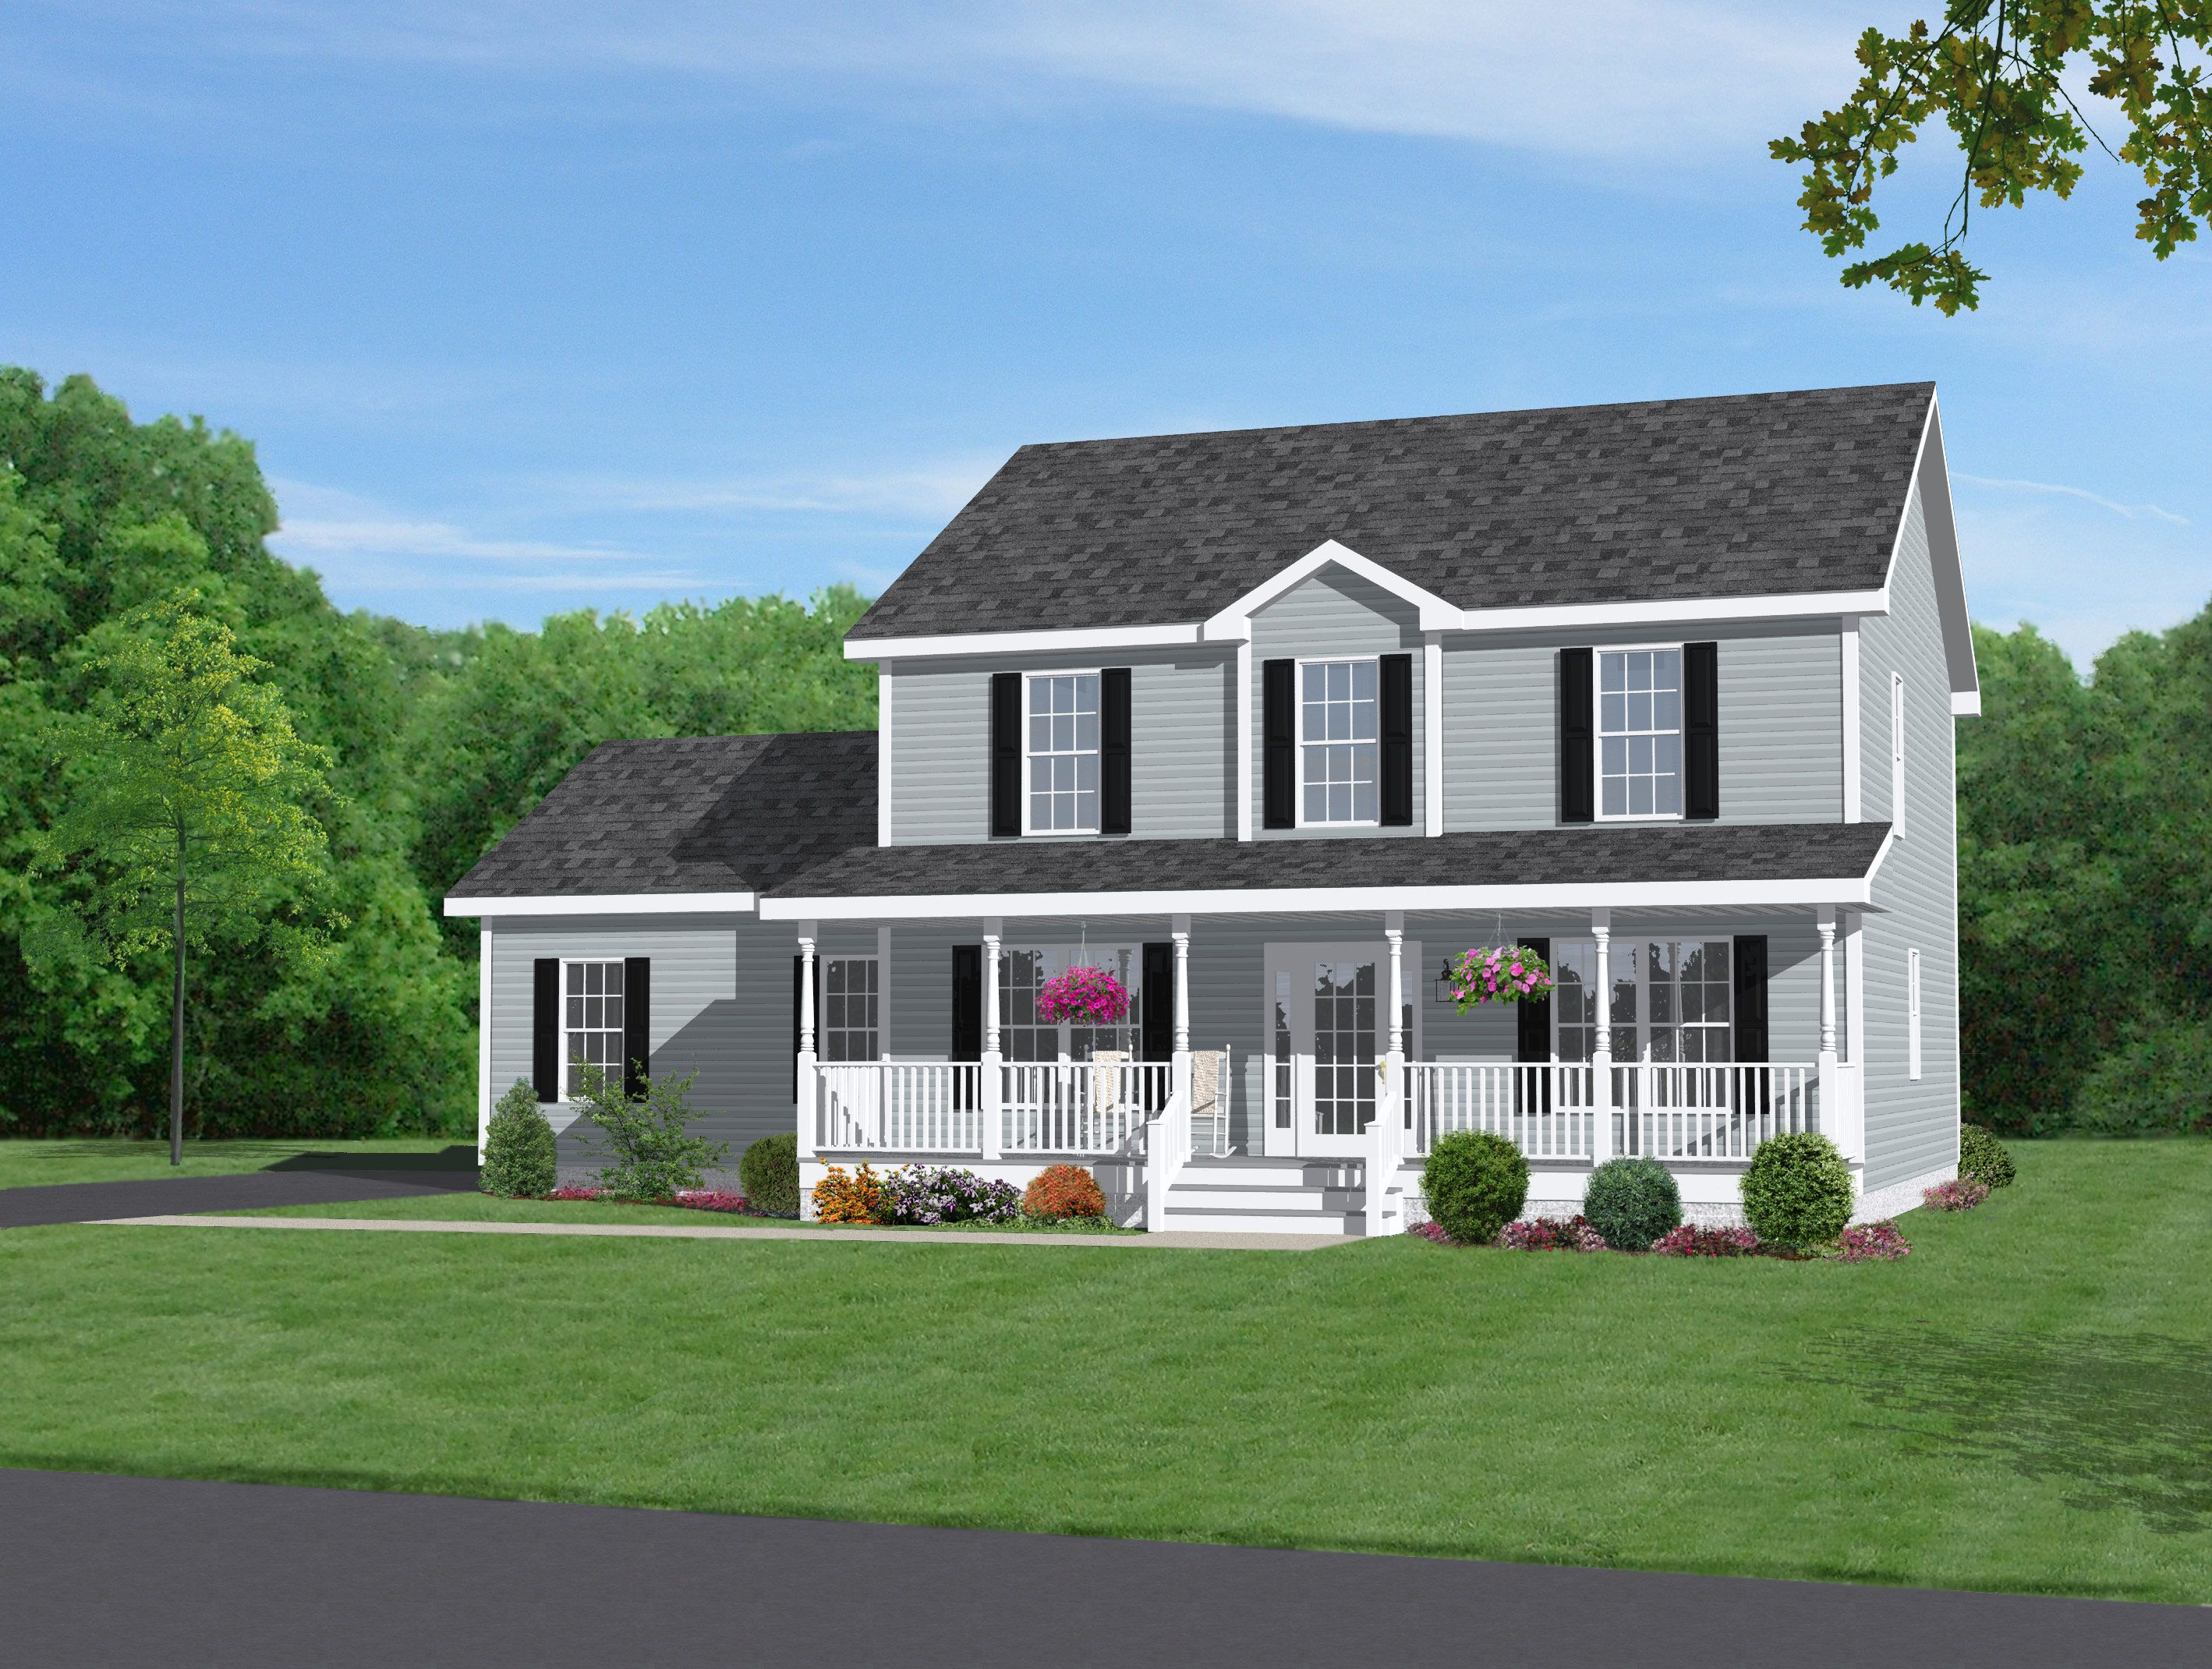 Two story home with beautiful front porch dream home for New two story homes